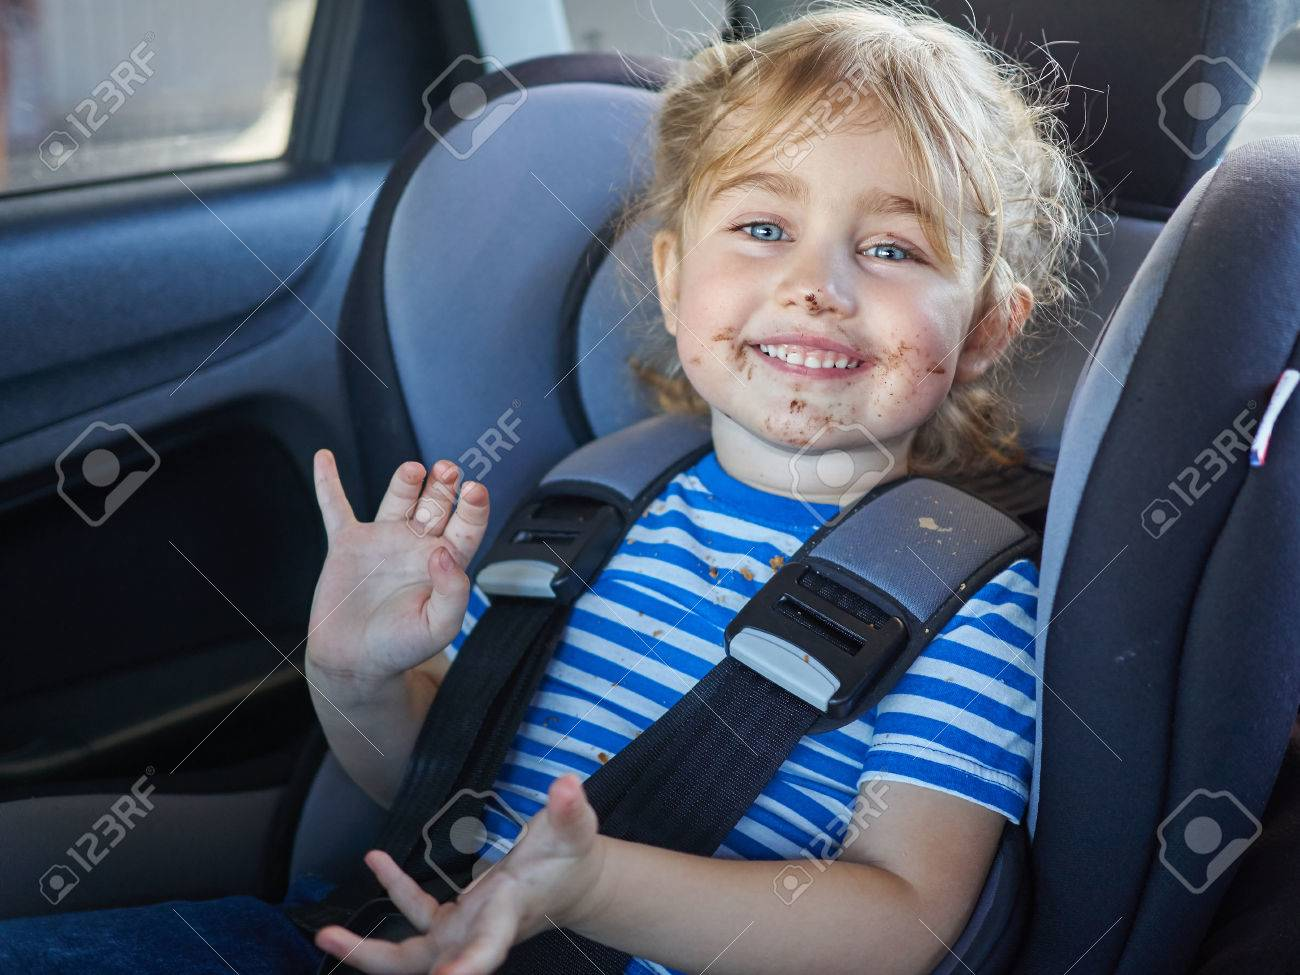 Little dirty girl , baby in a safety car seat. Safety and security - 53131185